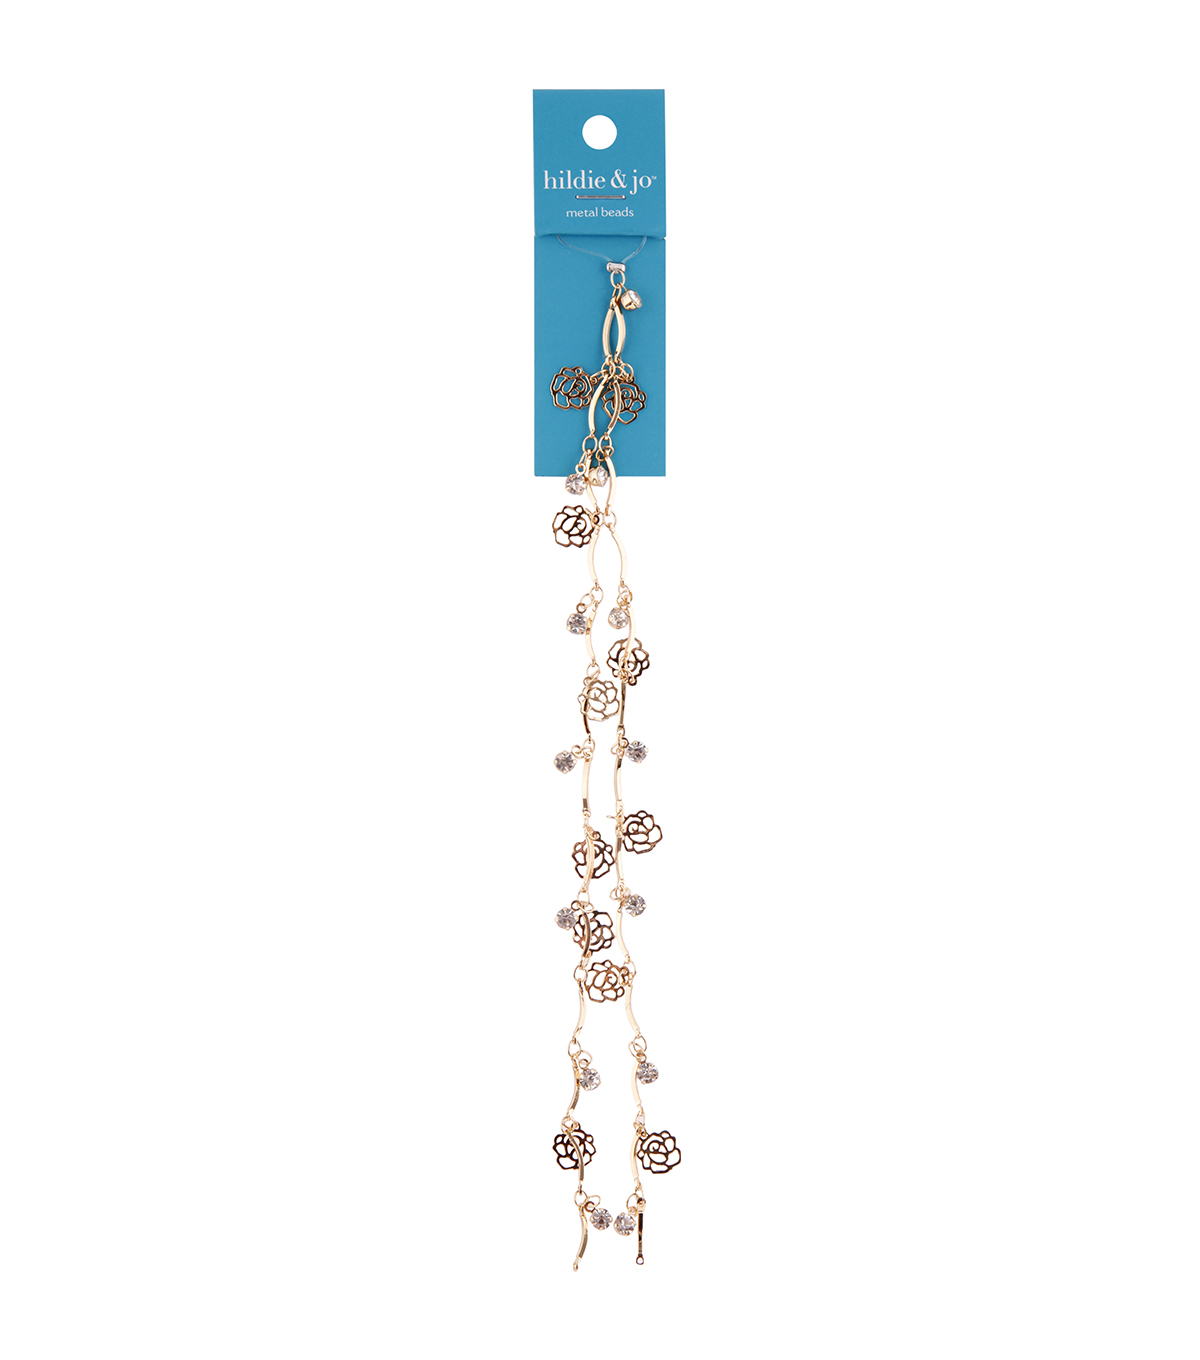 hildie & jo 14\u0022 Metal Rose Beads on Gold Chain